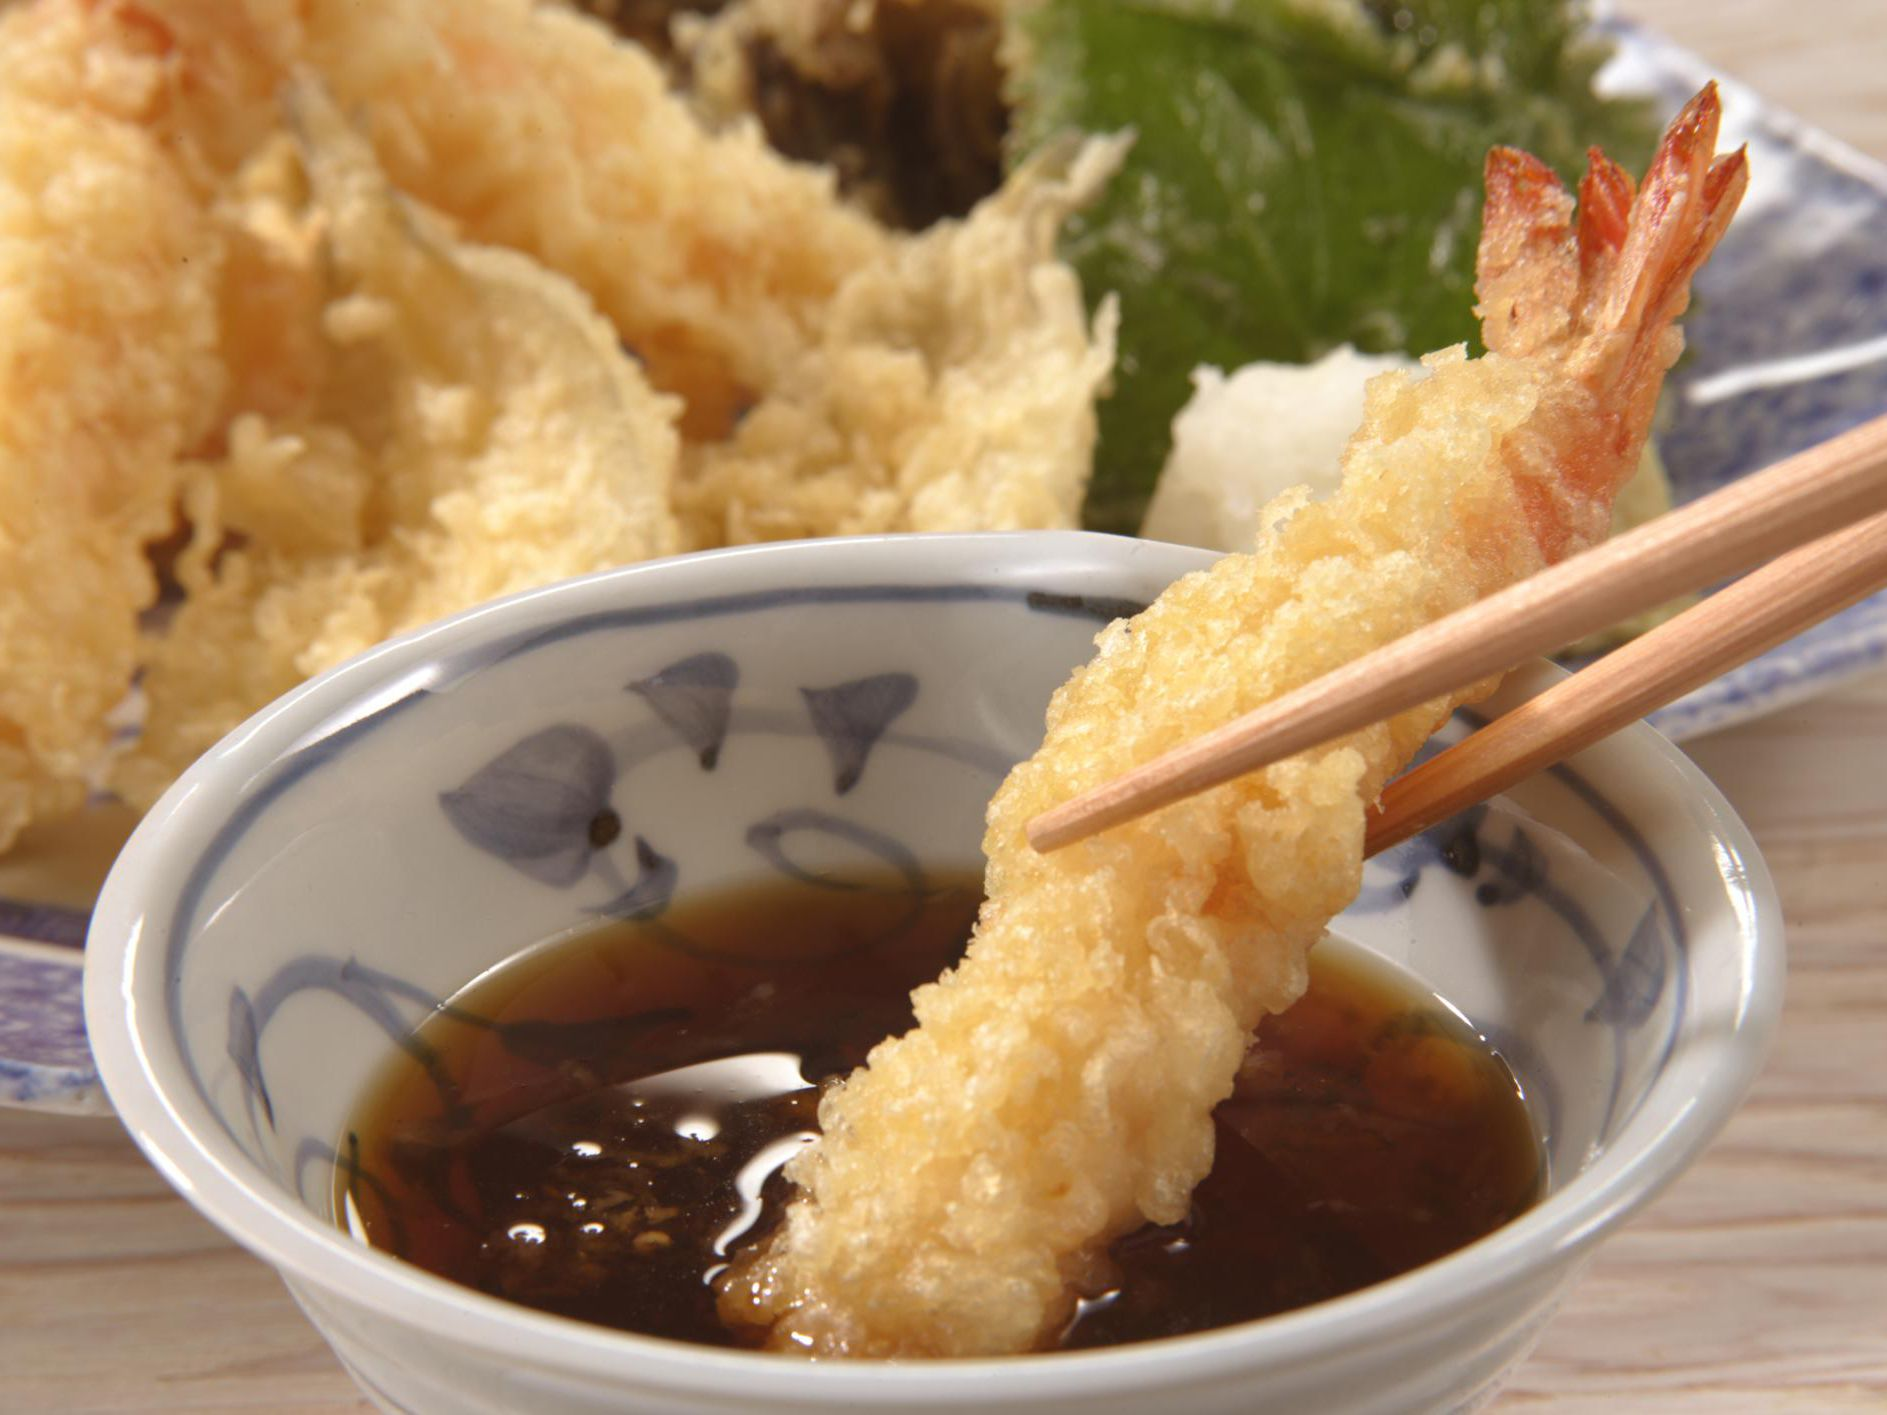 Best Tempura Batter Recipe For Fish Unique Fish Photo